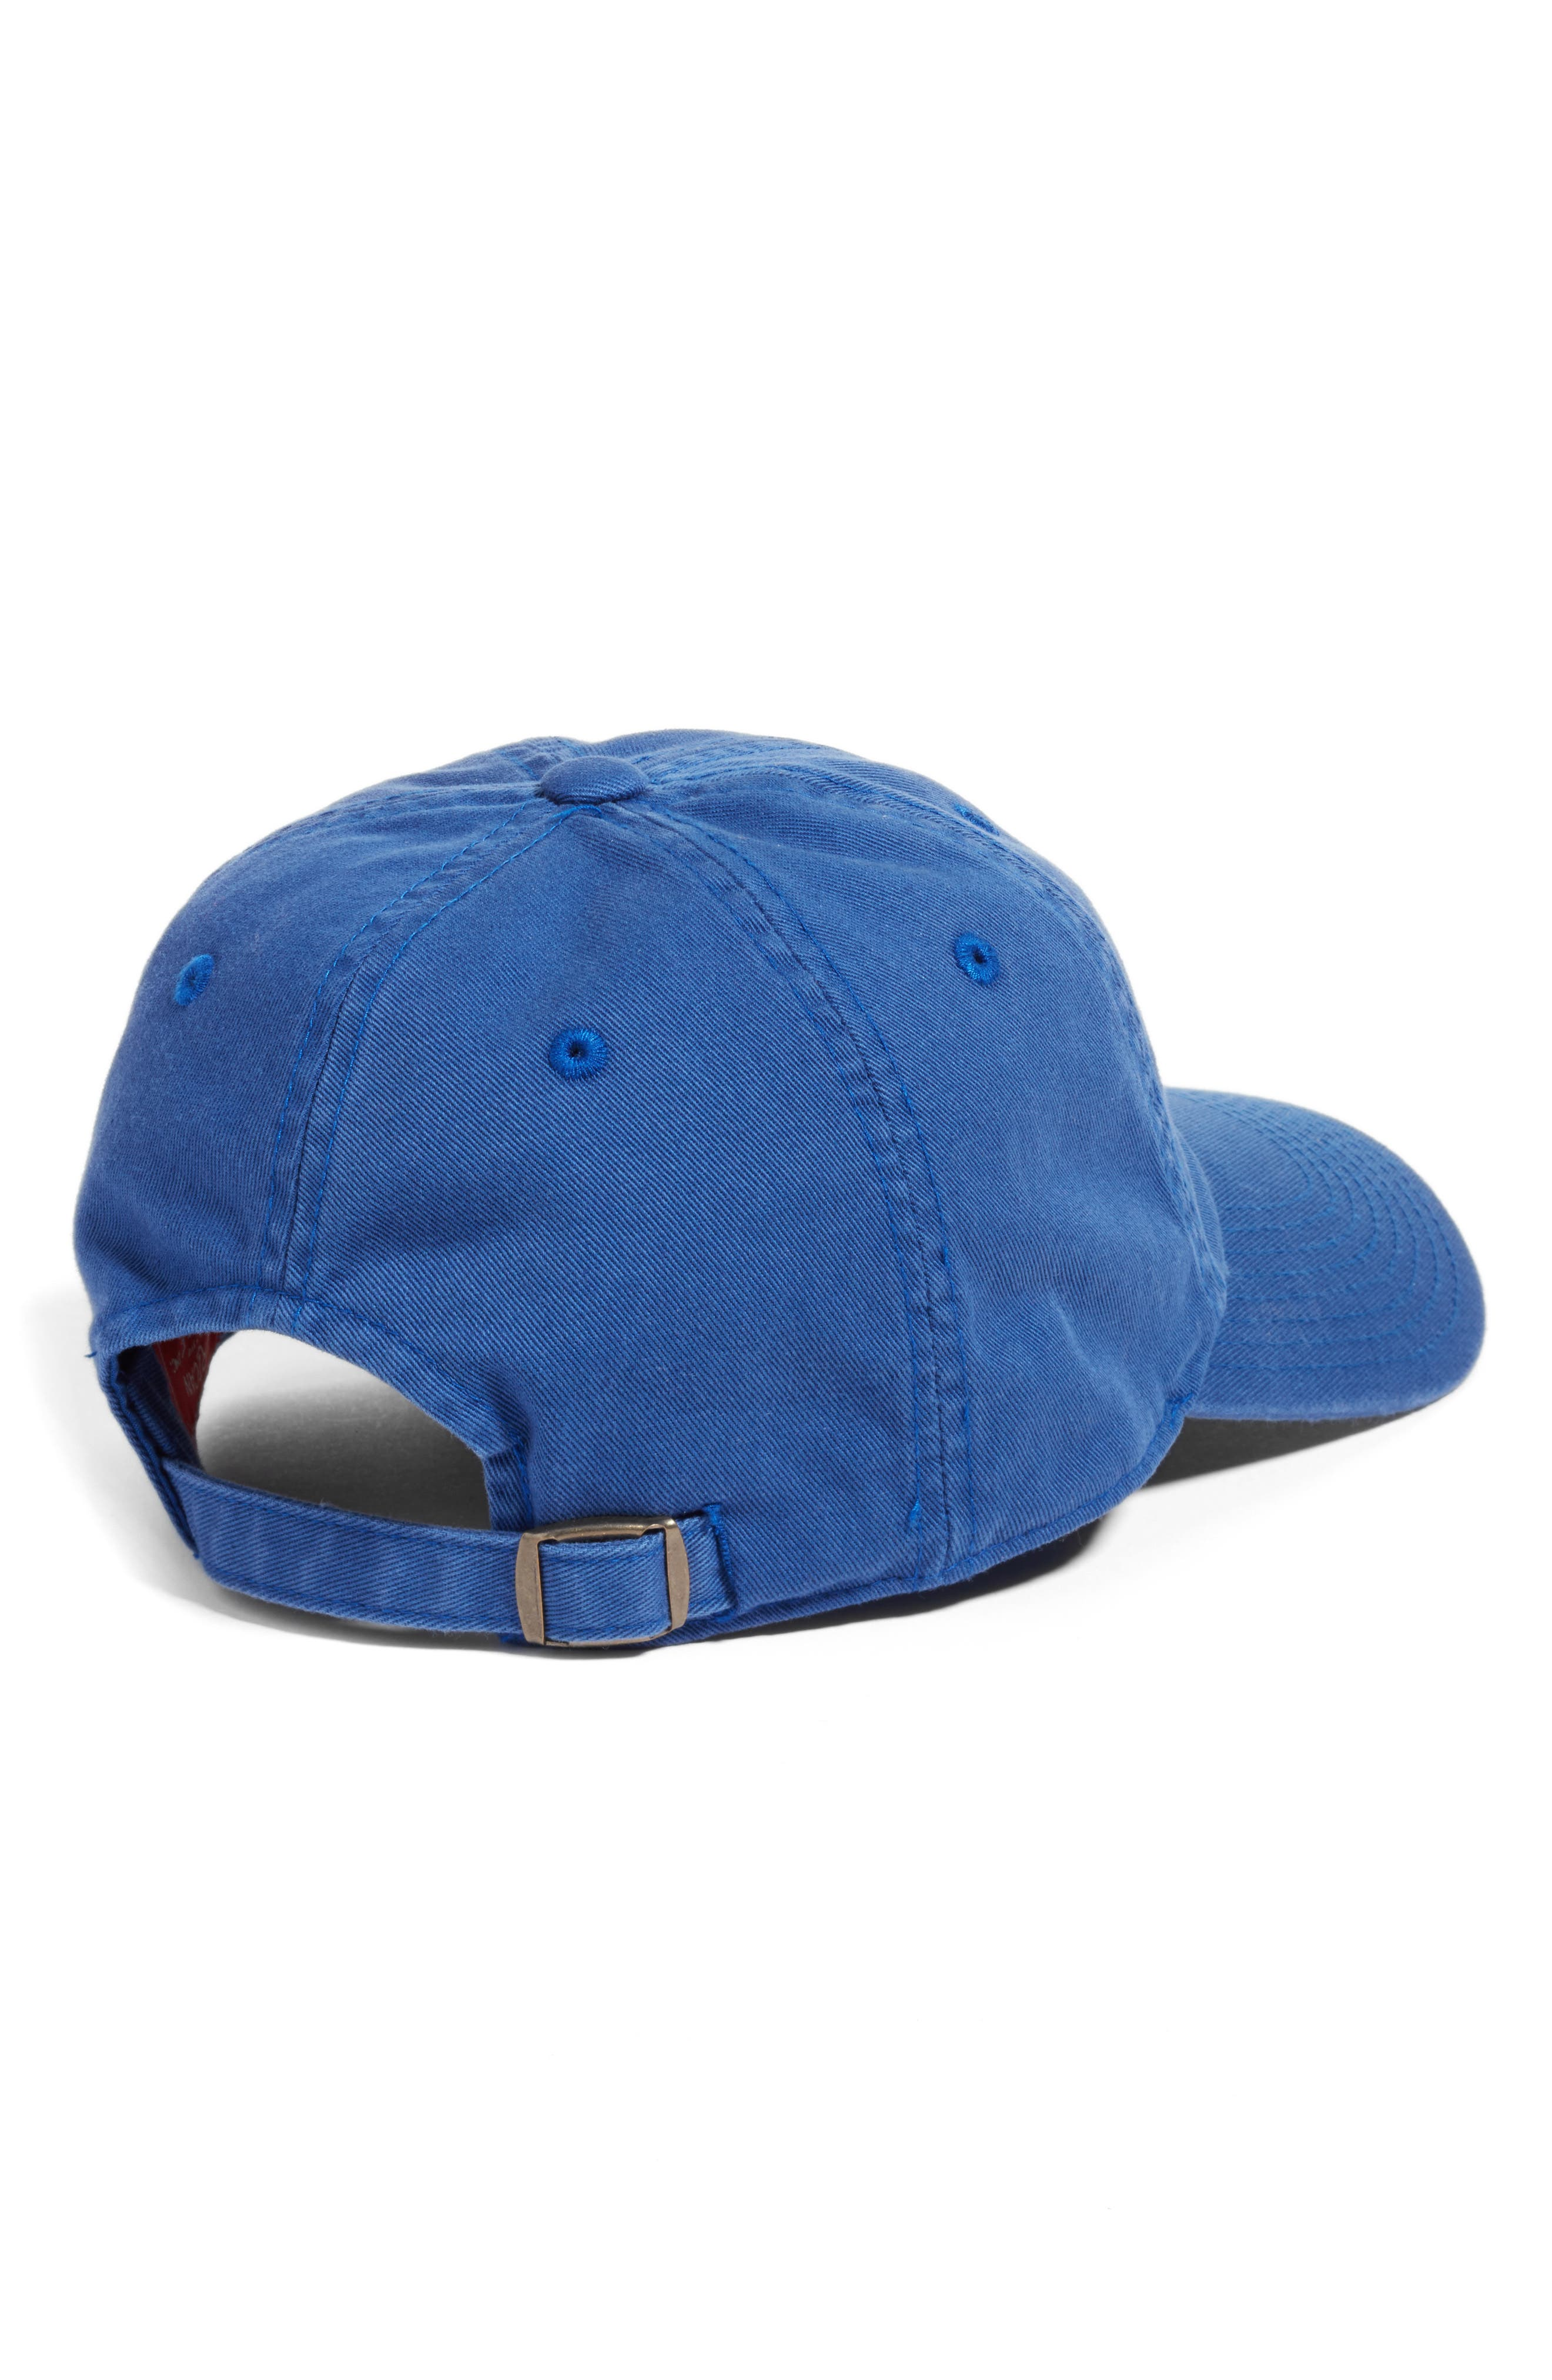 Boardshort - Chicago Baseball Cap,                             Alternate thumbnail 2, color,                             Bay Blue